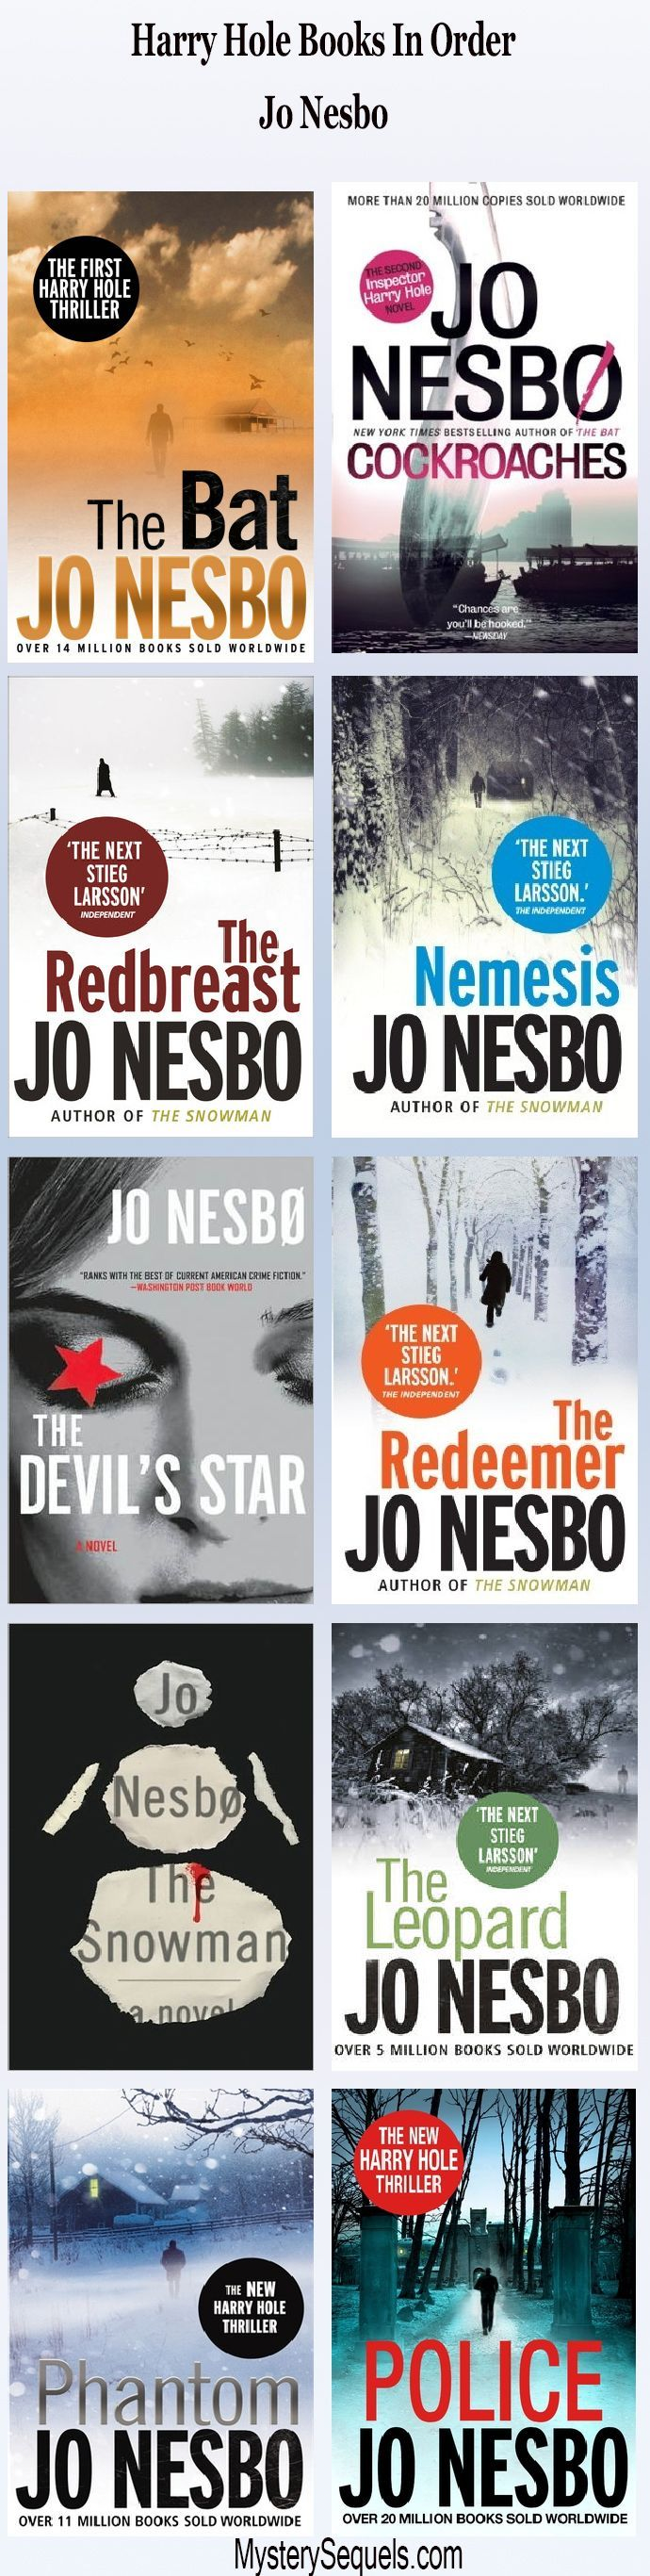 Harry Hole book list - Jo Nesbo